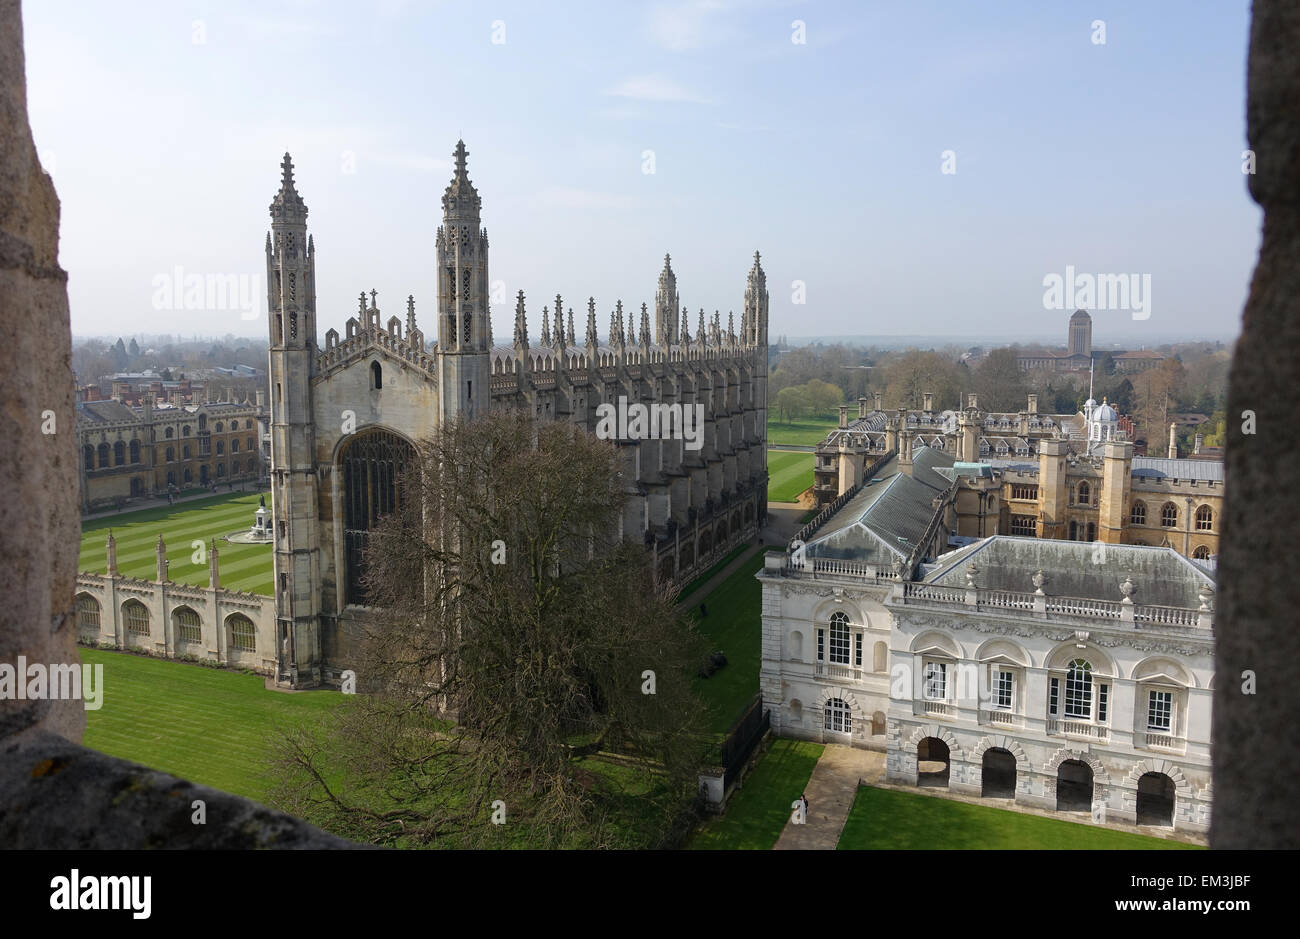 Kings College Cambridge - Stock Image